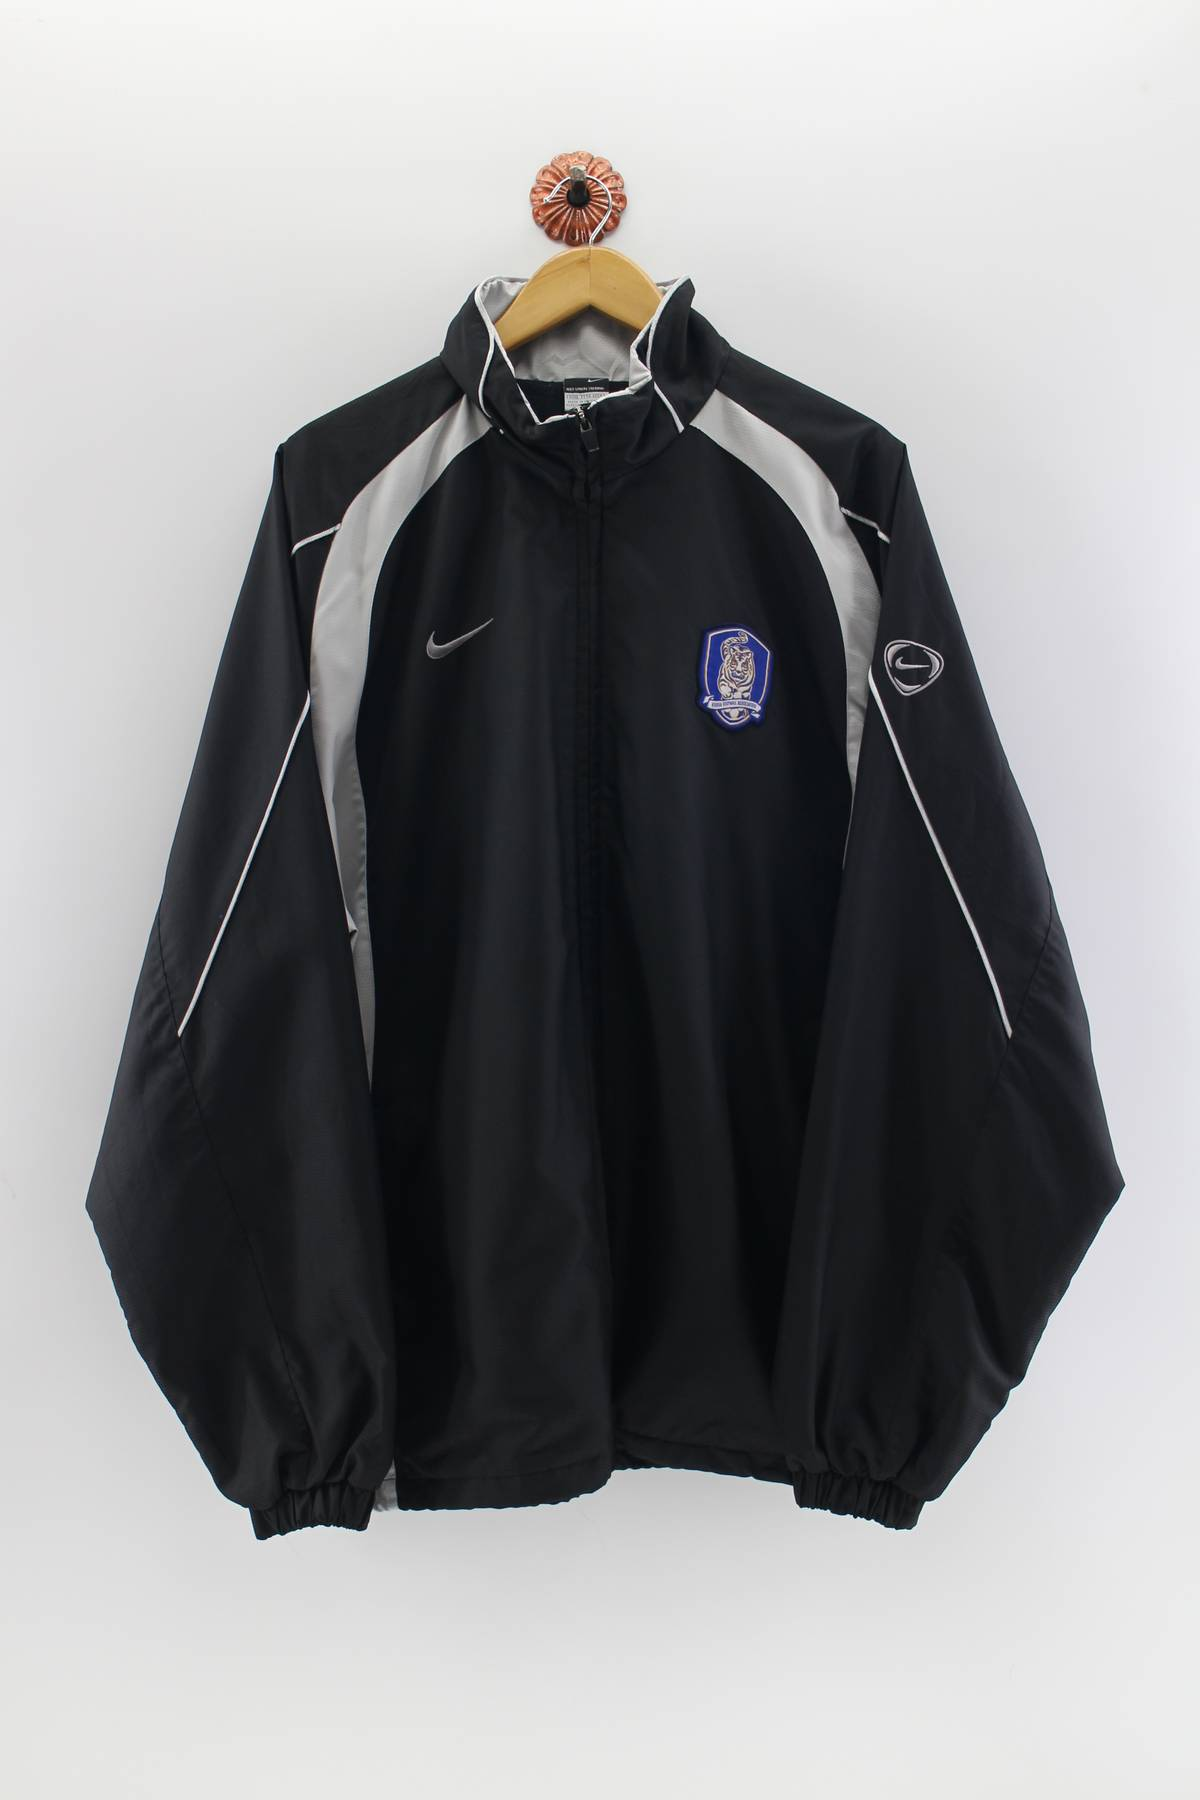 6e2799f1cd79a Nike × Windbreaker. Vintage 90 s NIKE Swoosh Korea Windbreaker Oversize Men Nike  Running Trainer Hoodie Jacket Nike Usa Sportwear Black ...